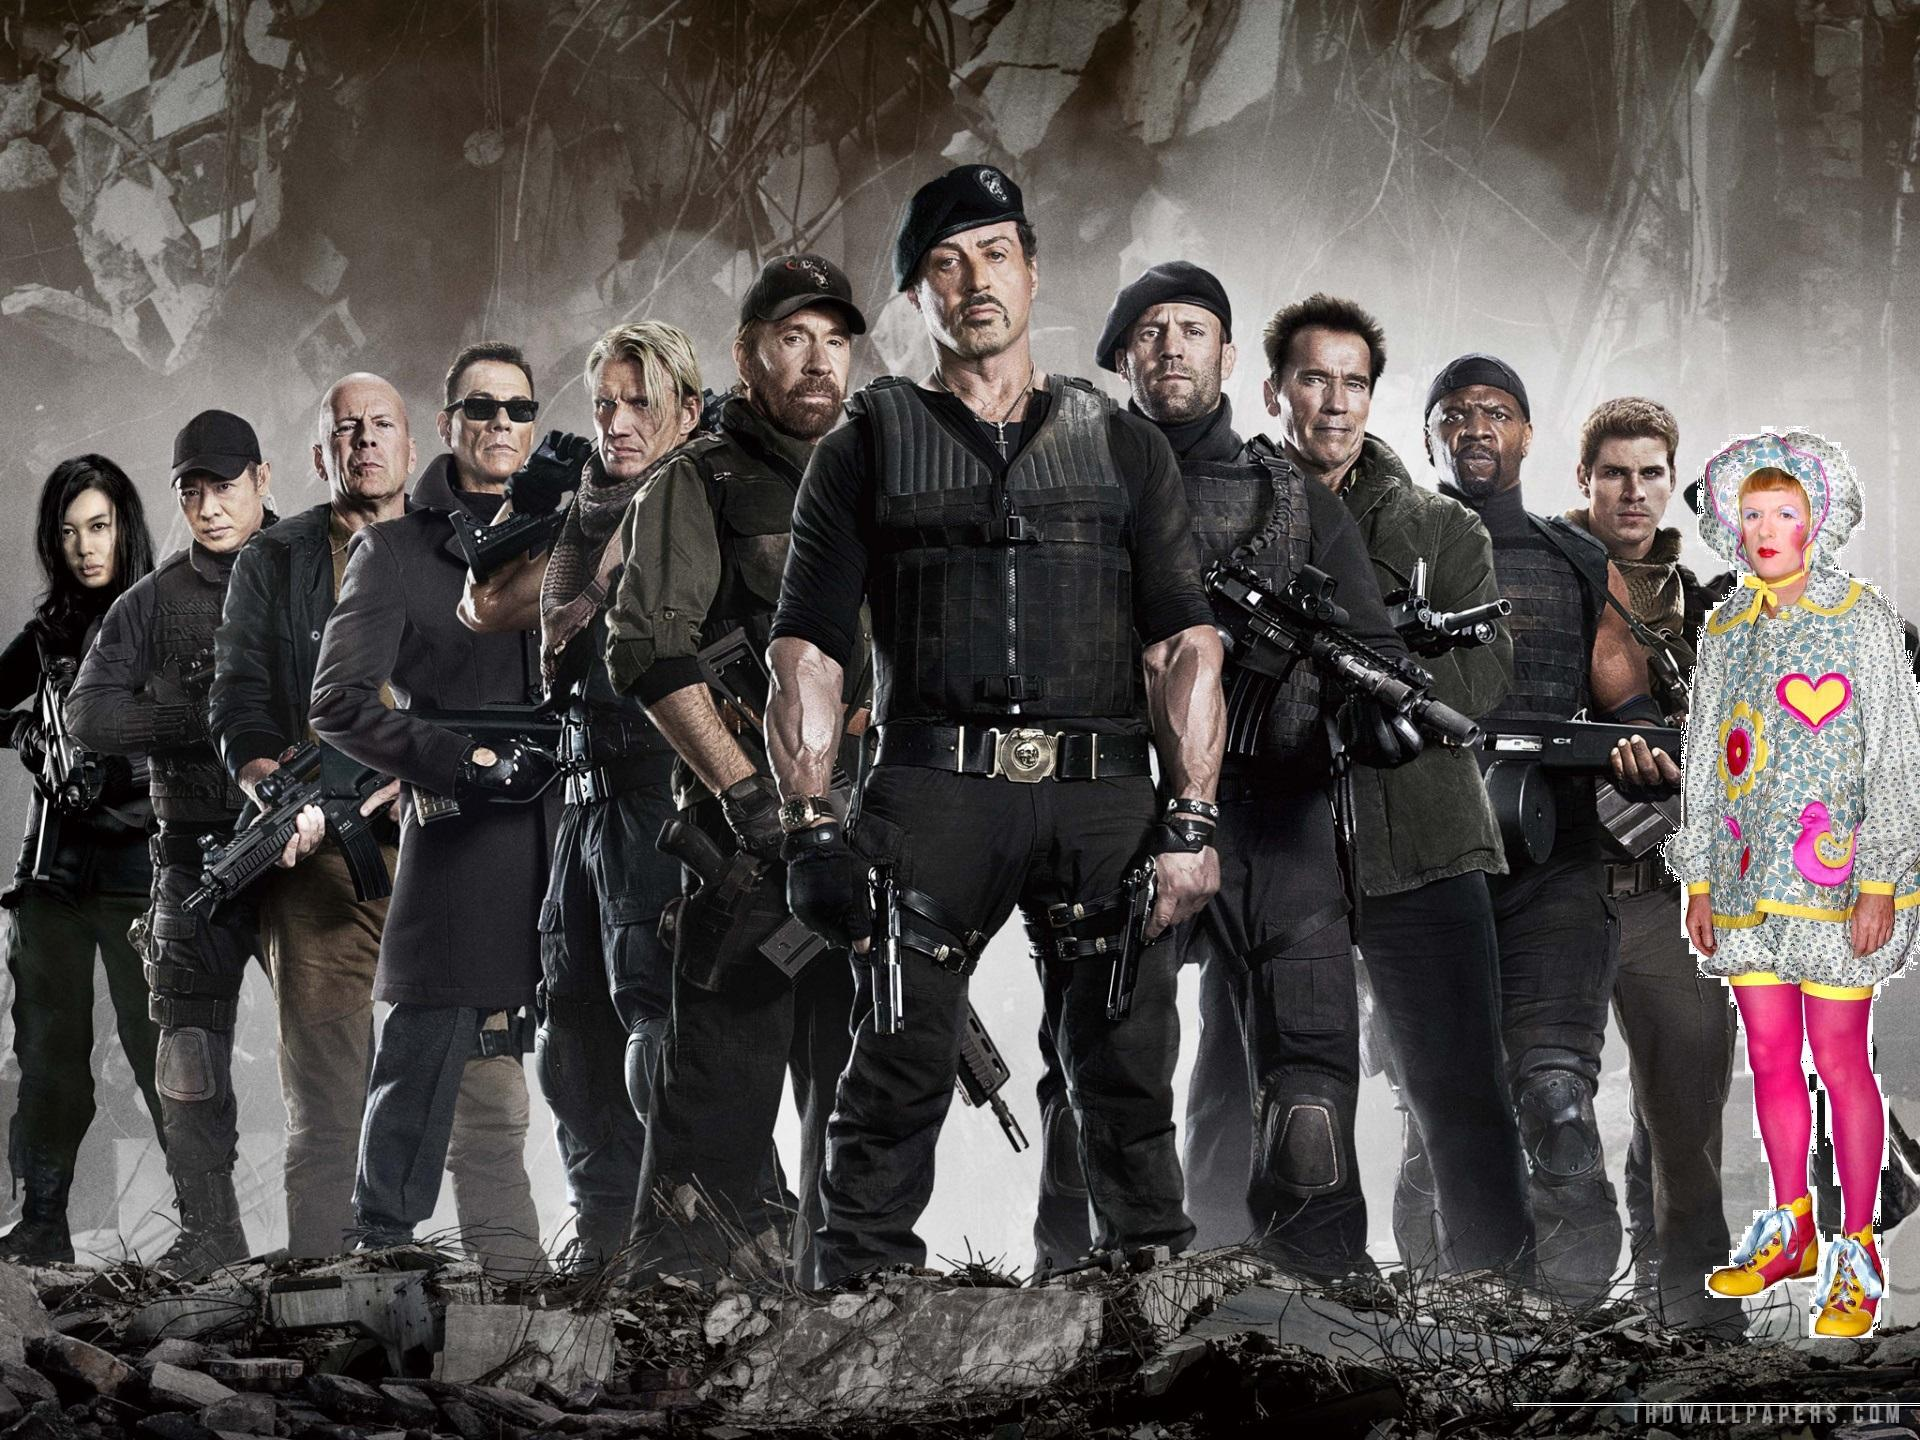 RT @linopolis: @Glinner I did it! LOVE ME!!!! #Expendables3 http://t.co/VT4GyqJLMq